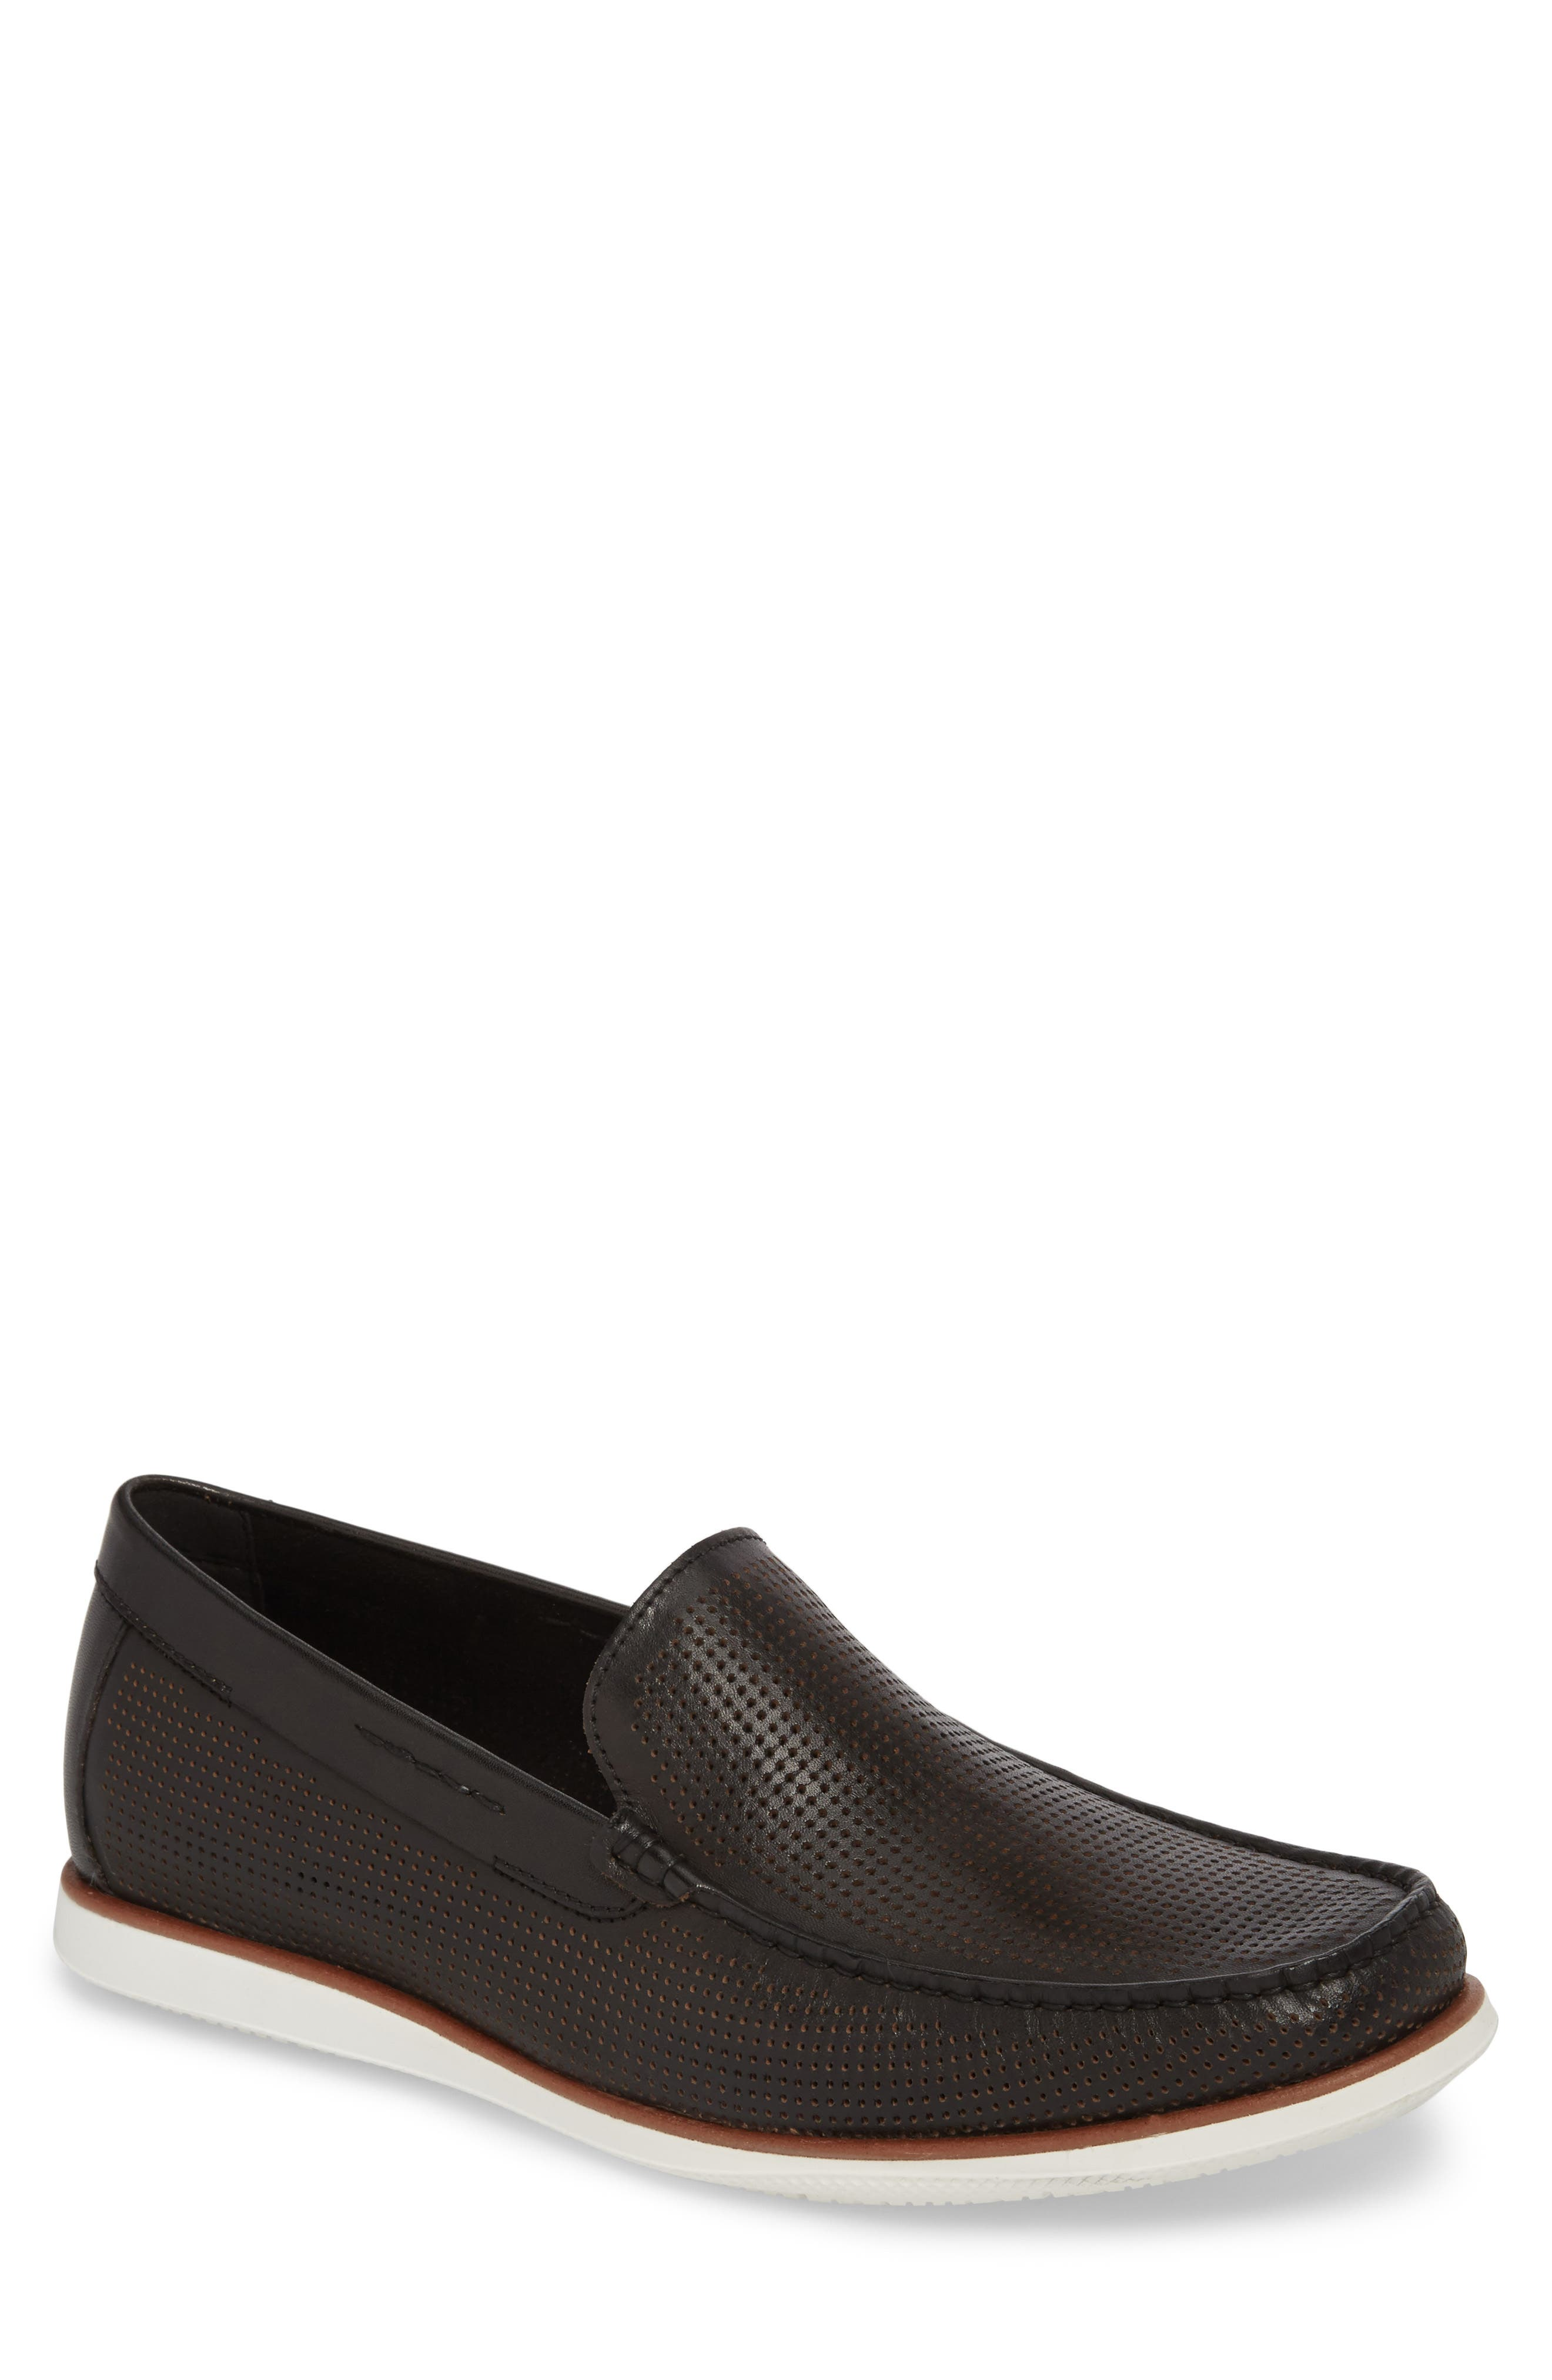 Cyrus Venetian Loafer,                         Main,                         color,